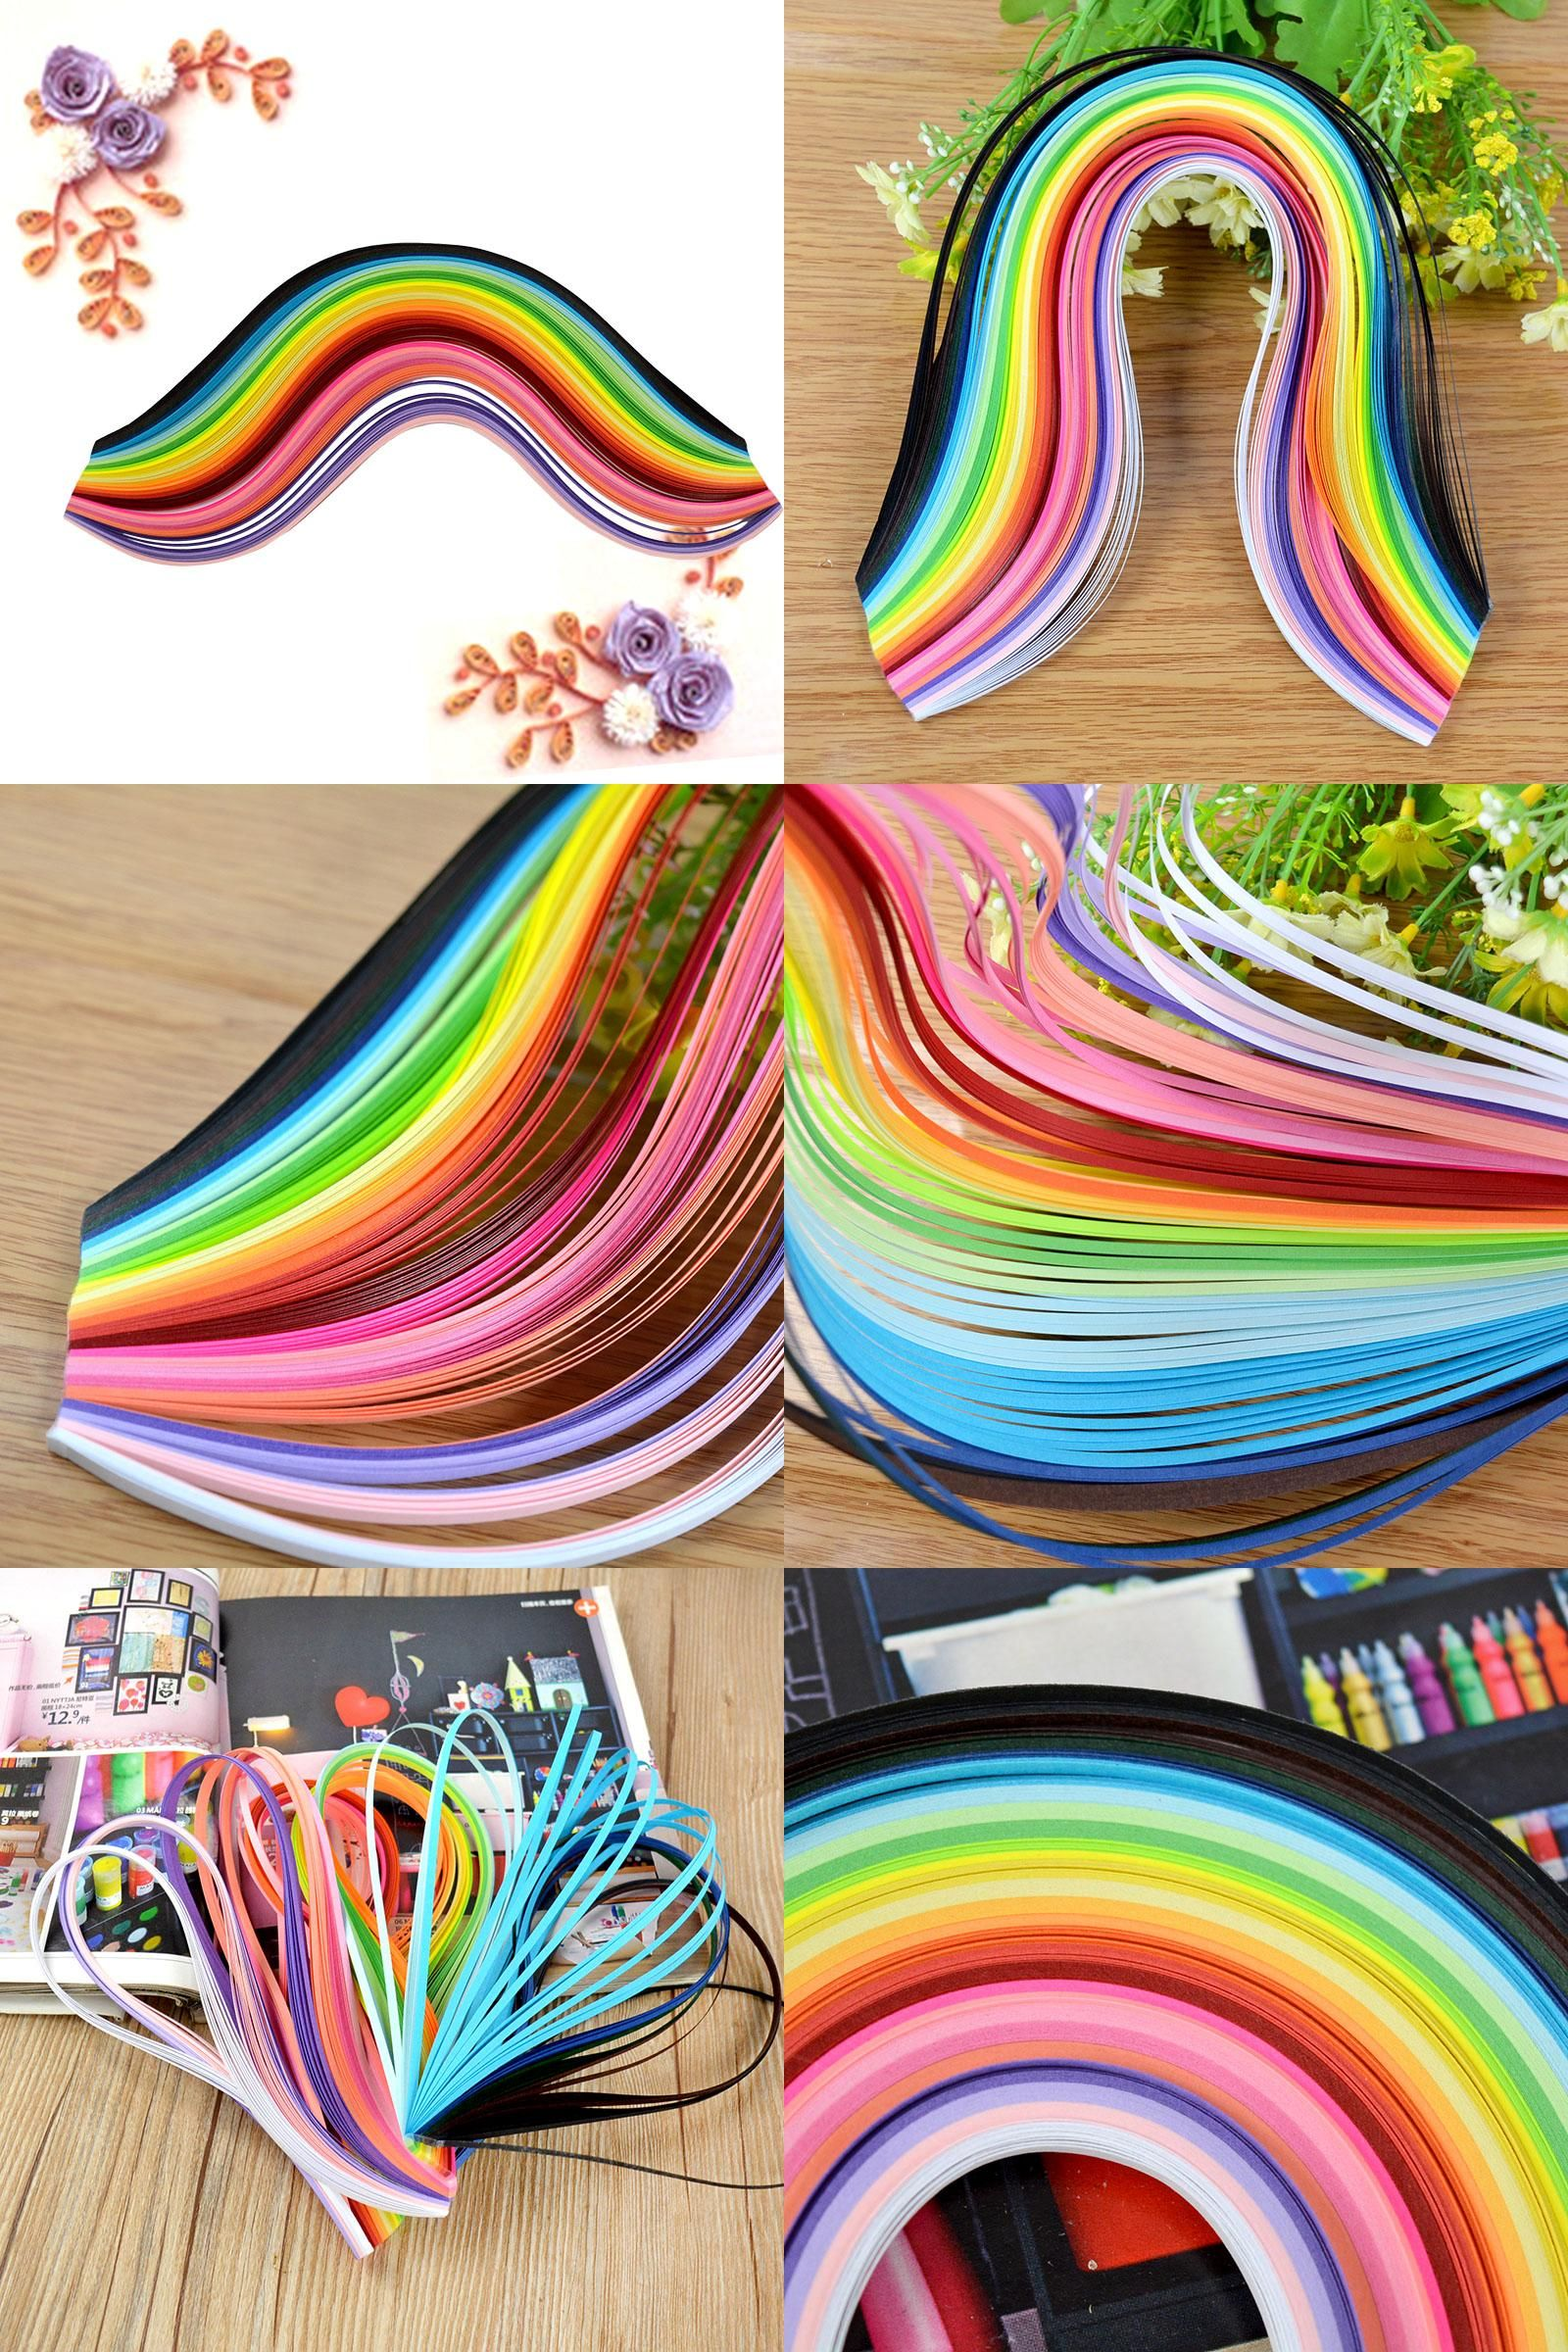 3mm Width 260 Stripes Mixed Color DIY Decor Quilling Paper Craft Origami Paper